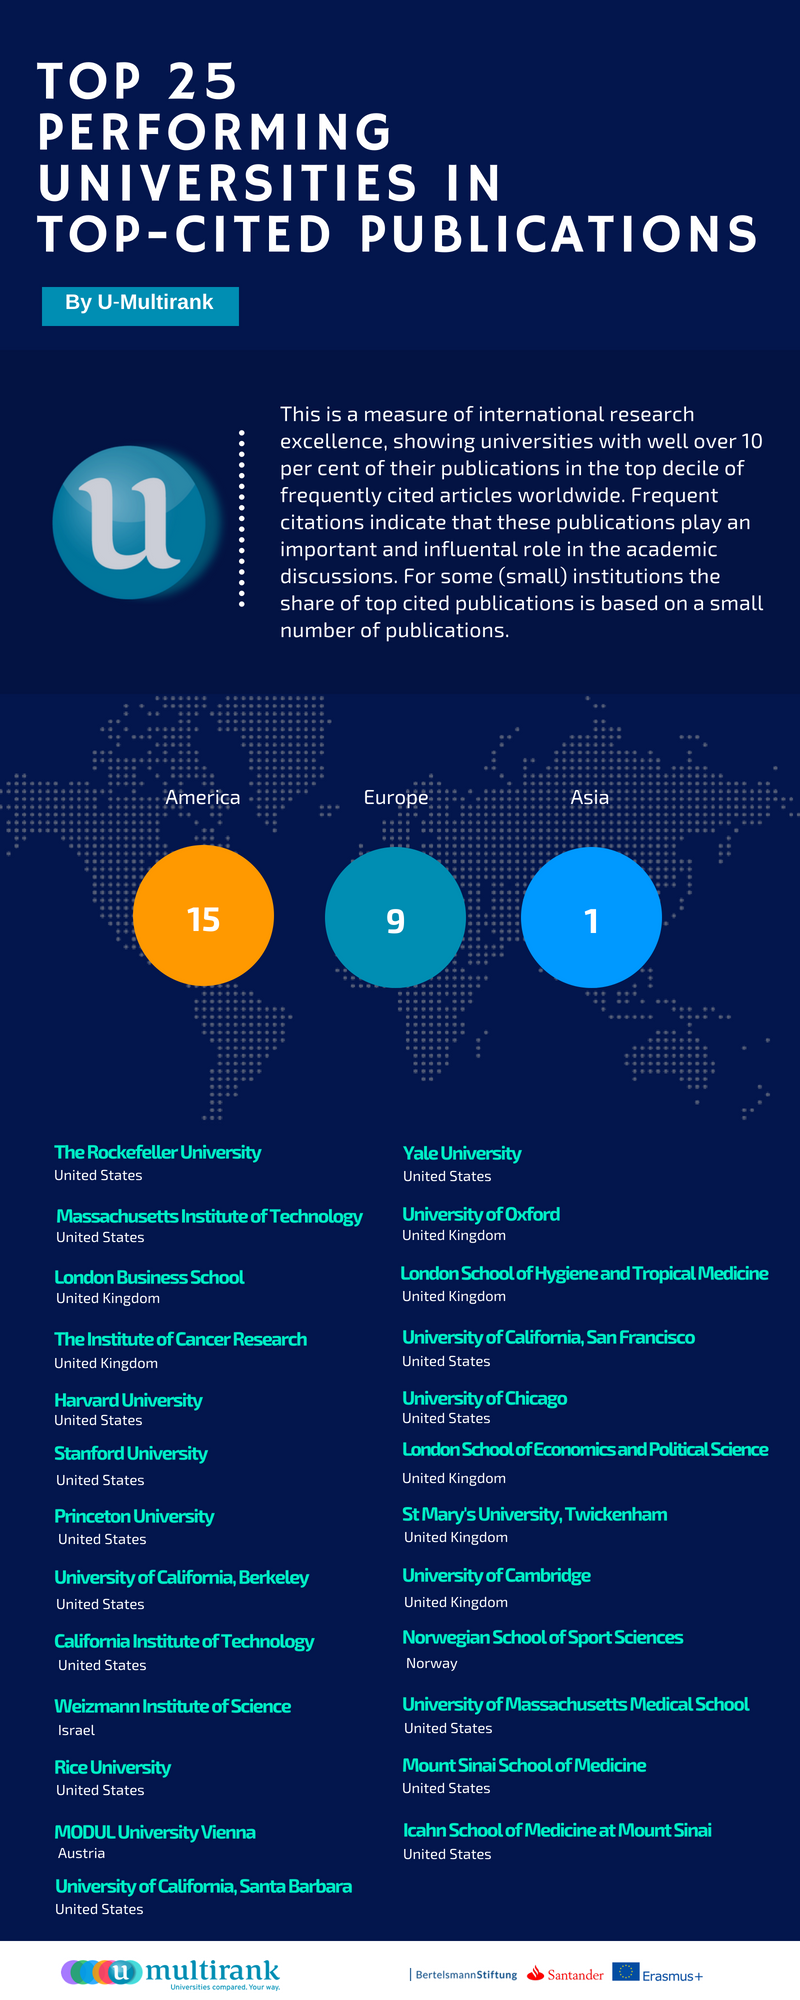 Top-cited-publications-2018.png